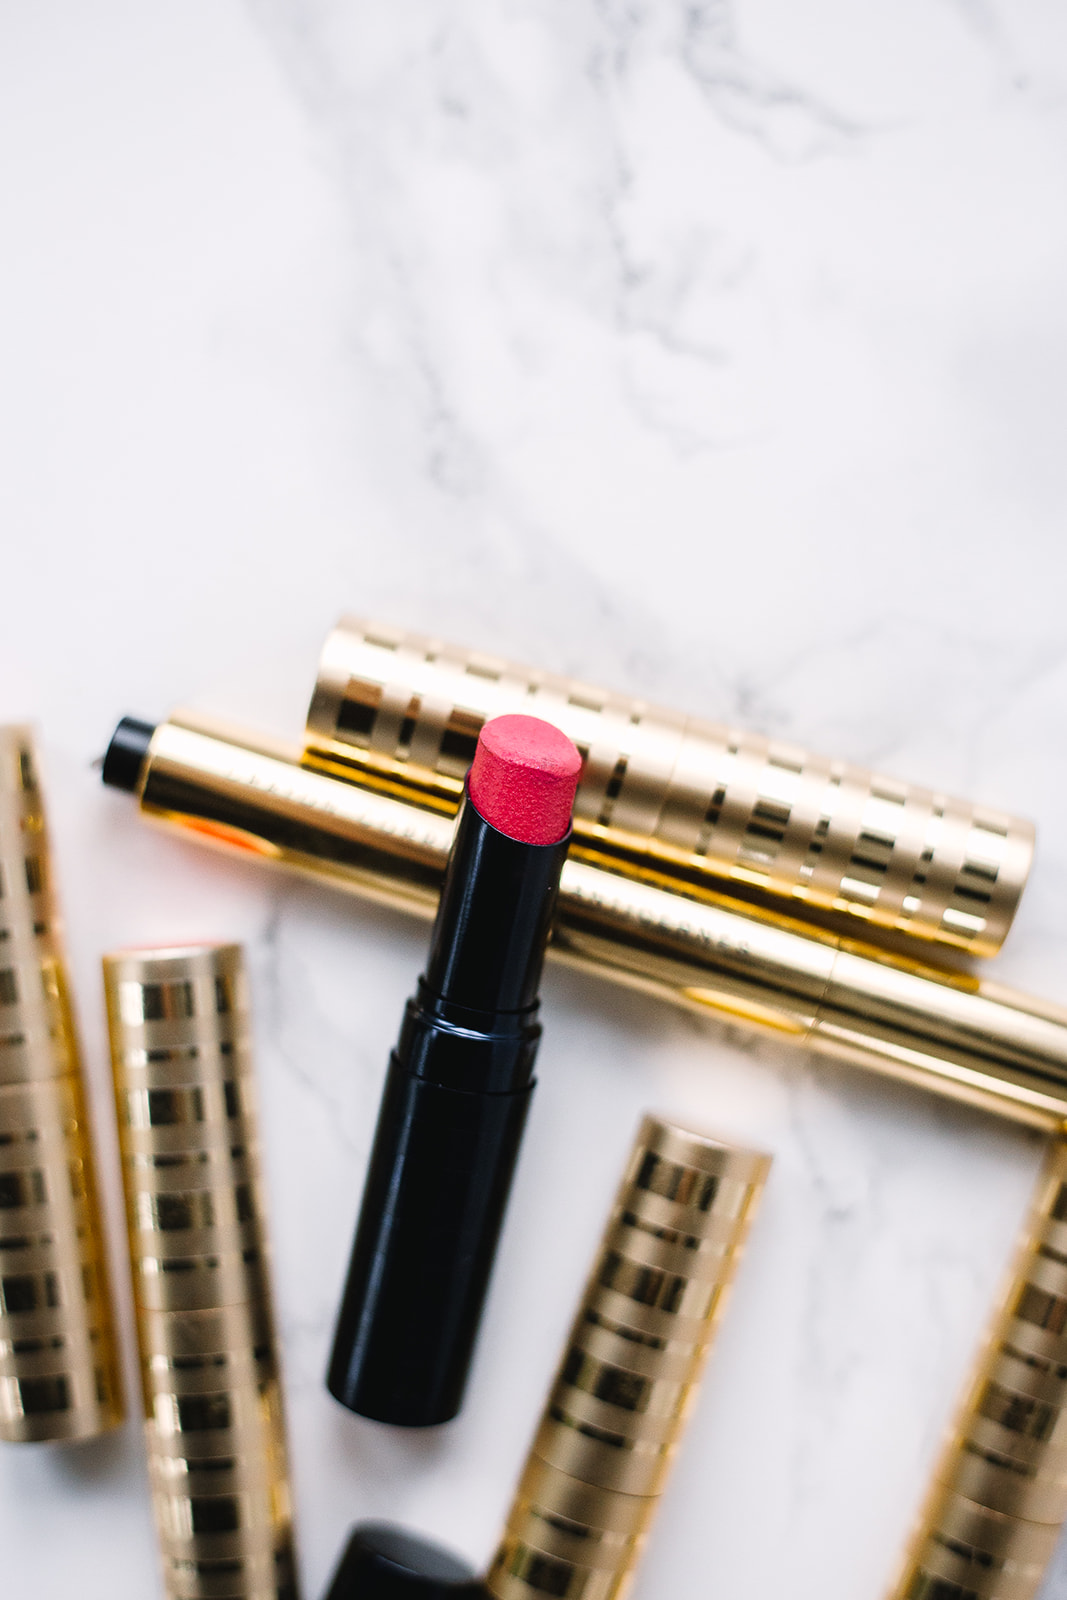 gluten-free, nut-free and soy-free lip color